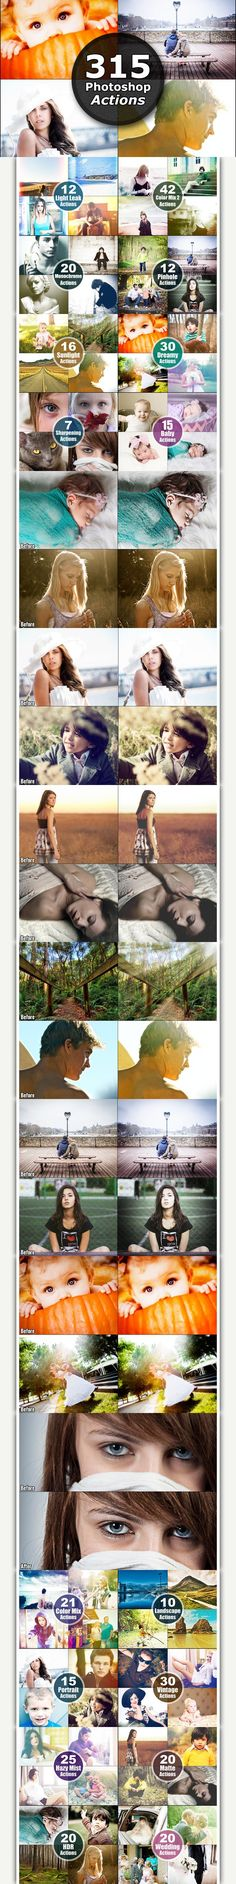 Photoshop Actions Filters Effects. Photoshop Plugins. $19.00